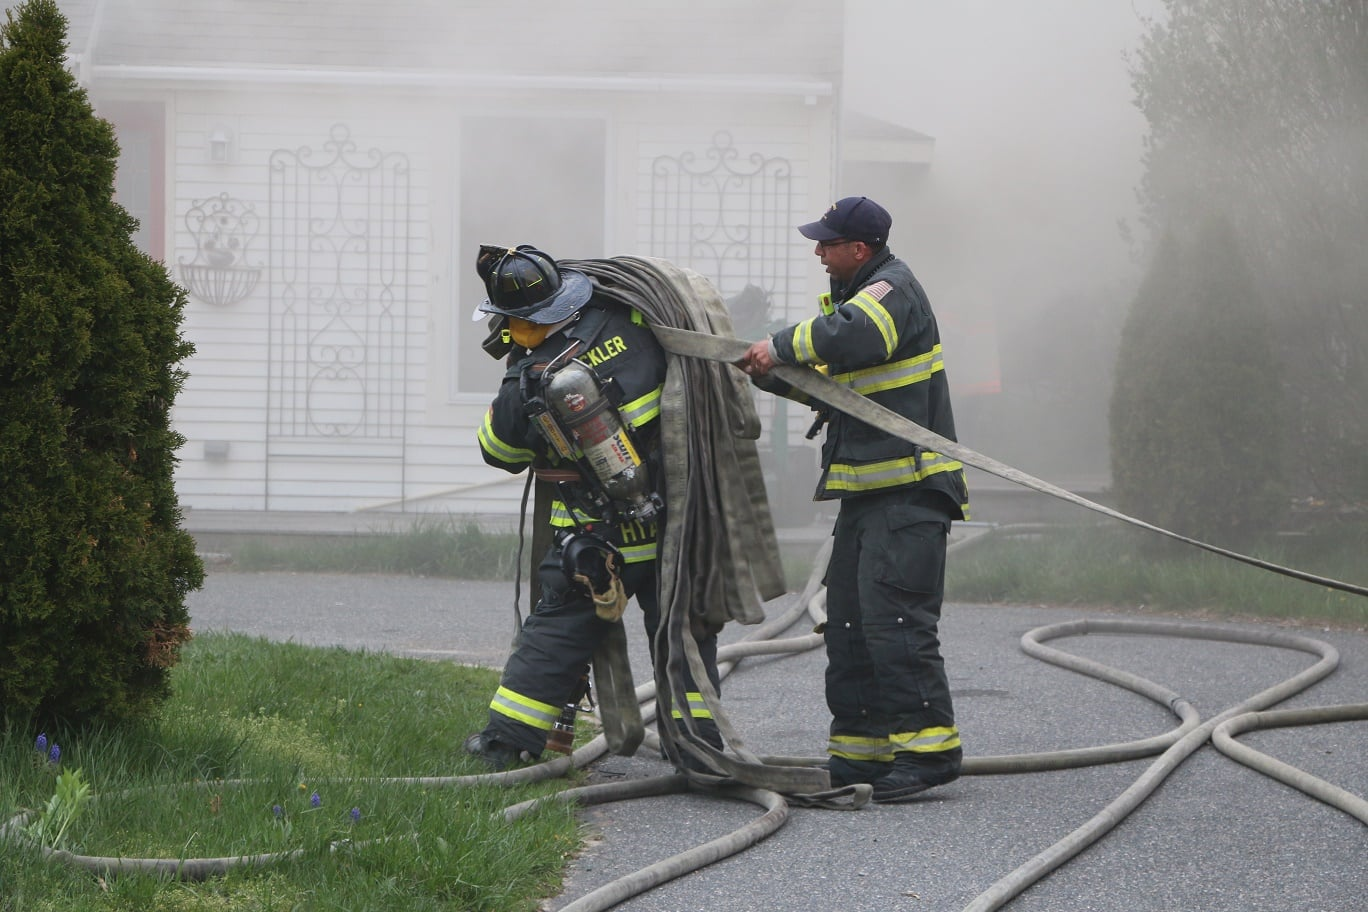 FIREFIGHTER HURT: Smokey fire destroys Hyannis home… [RAW VIDEO]